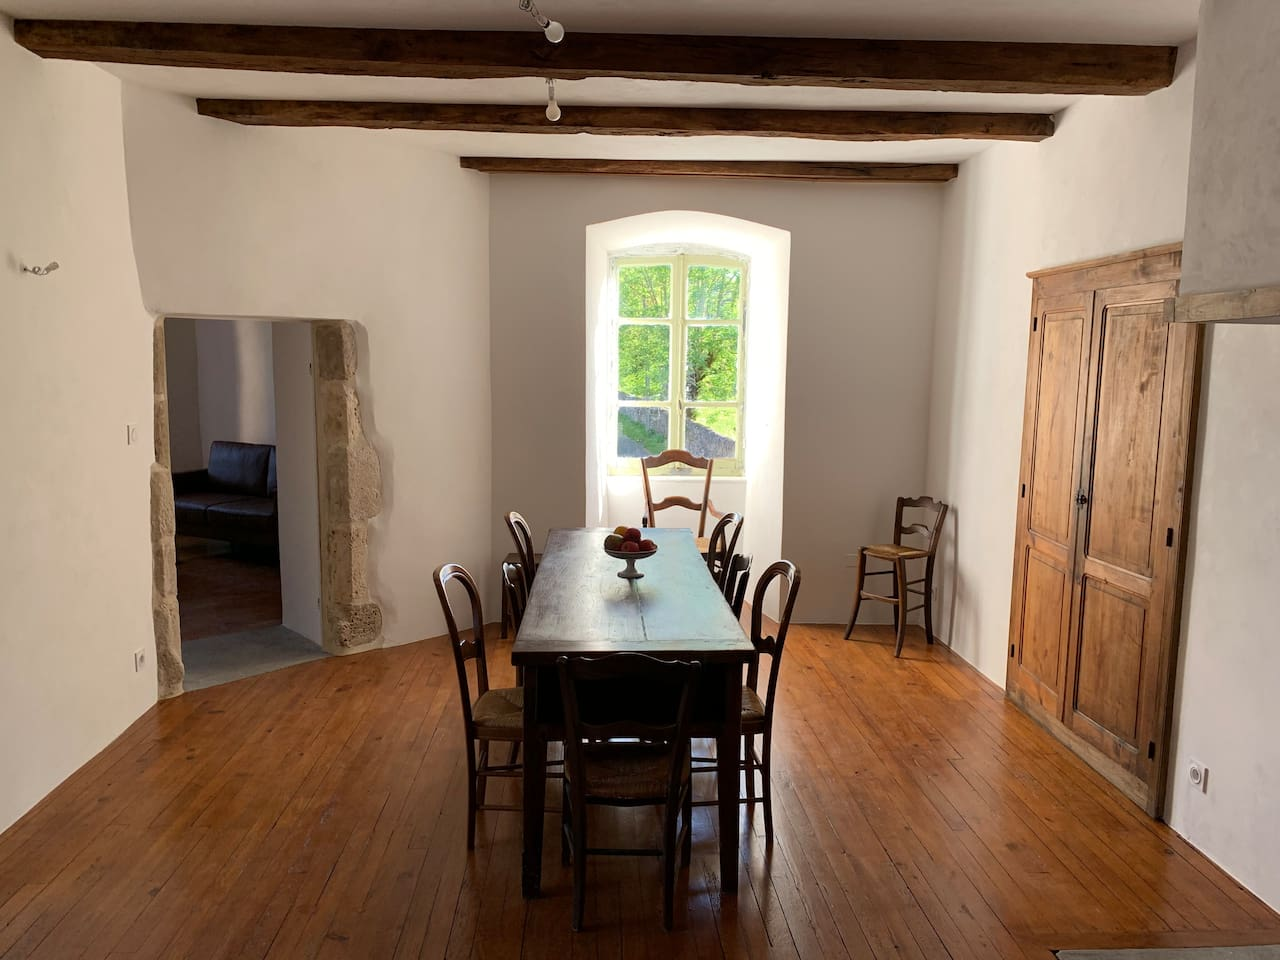 Dining room with antique farm table